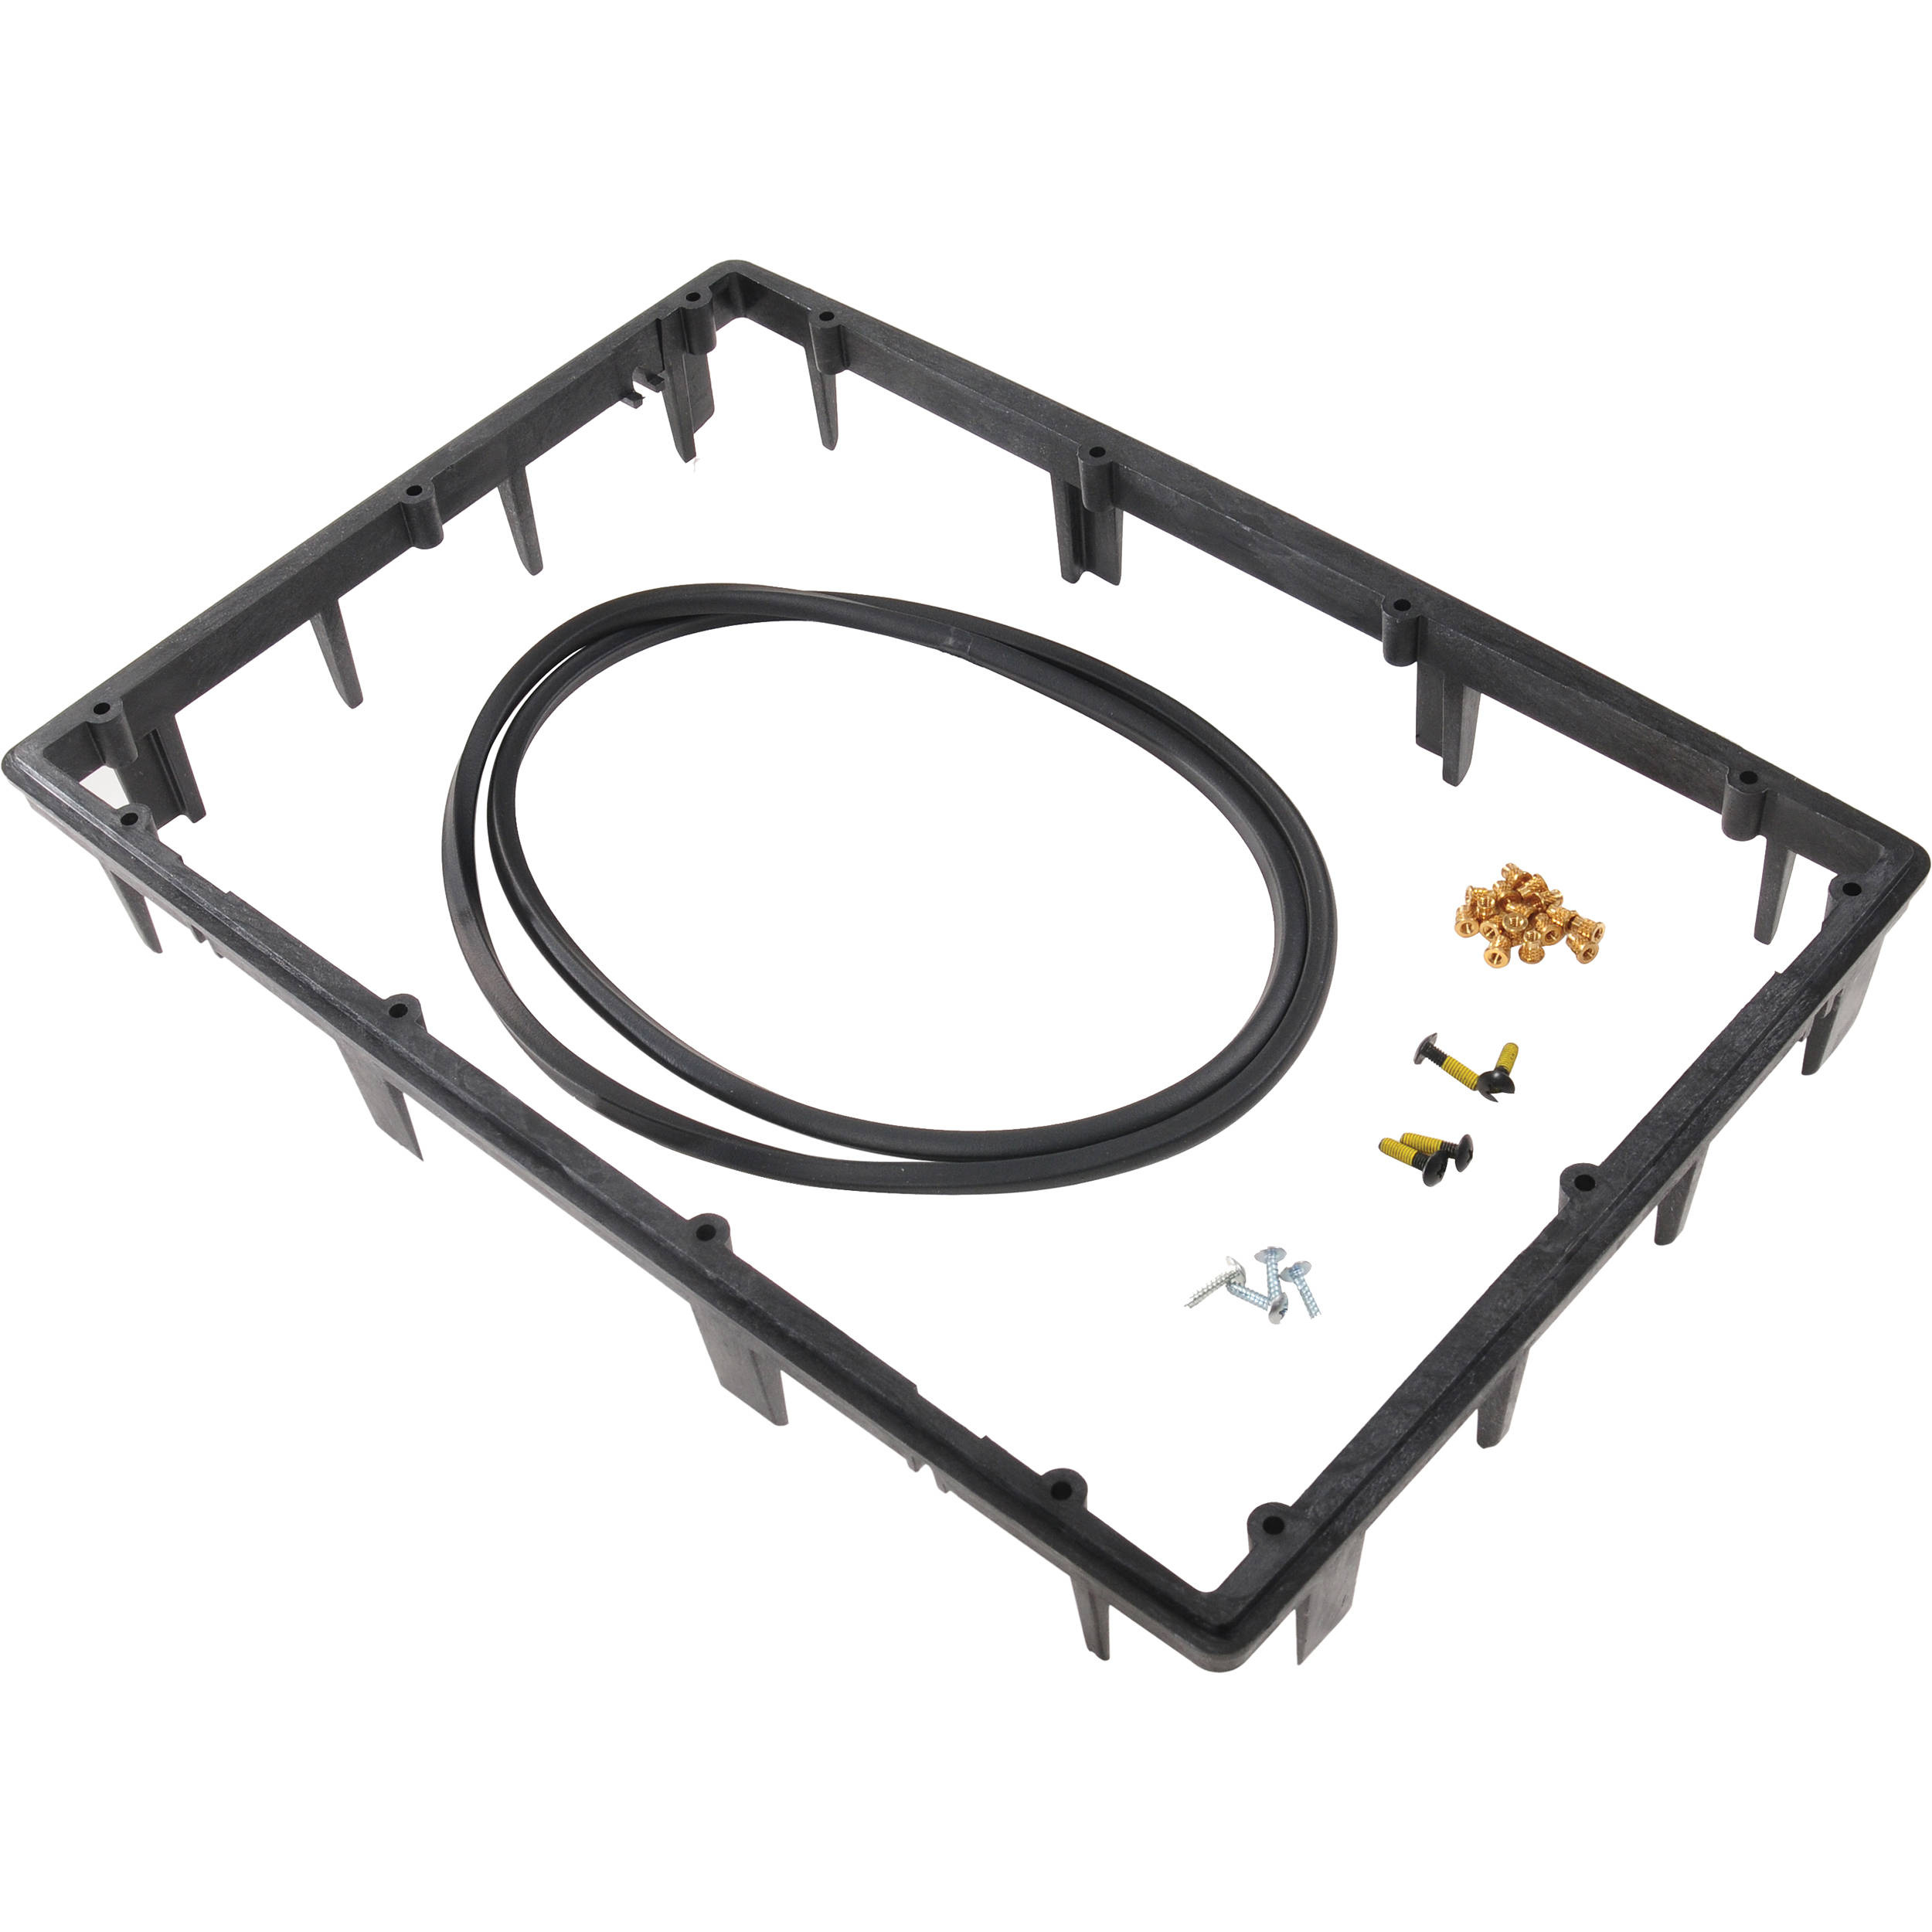 Pelican 1500PF Special Application Panel Frame Kit